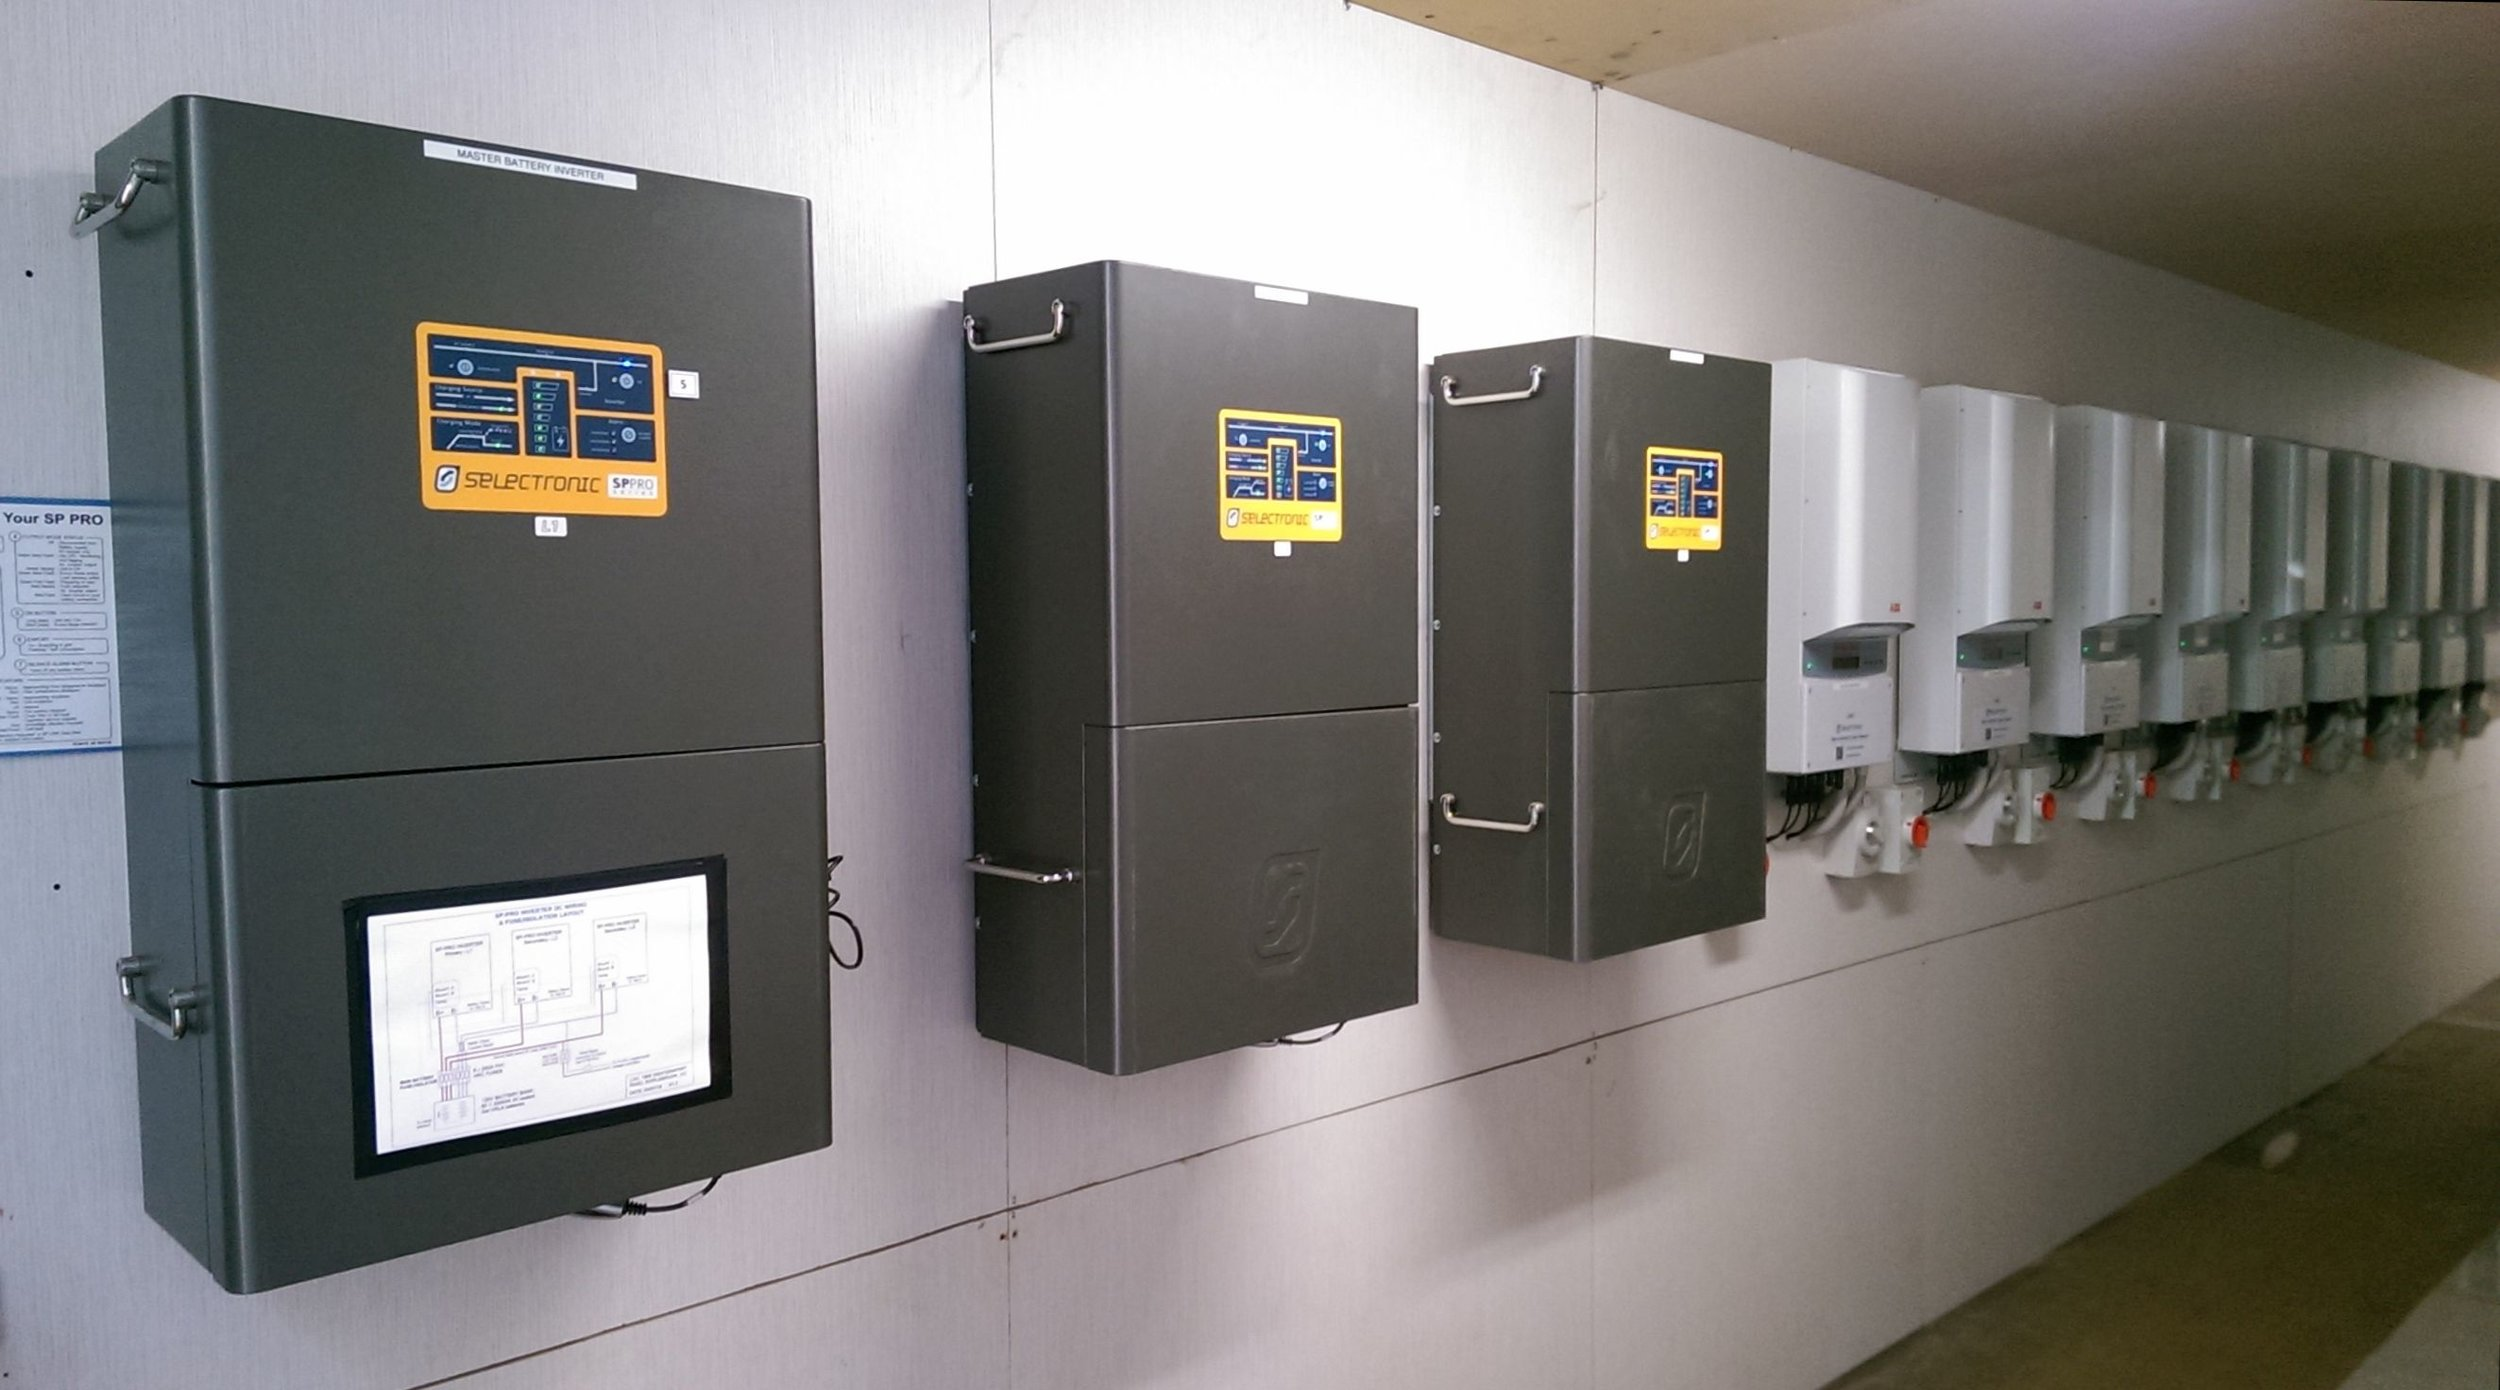 The 3 Australian made Selectronic SP PRO multi-mode inverters coupled with 9 ABB solar inverters